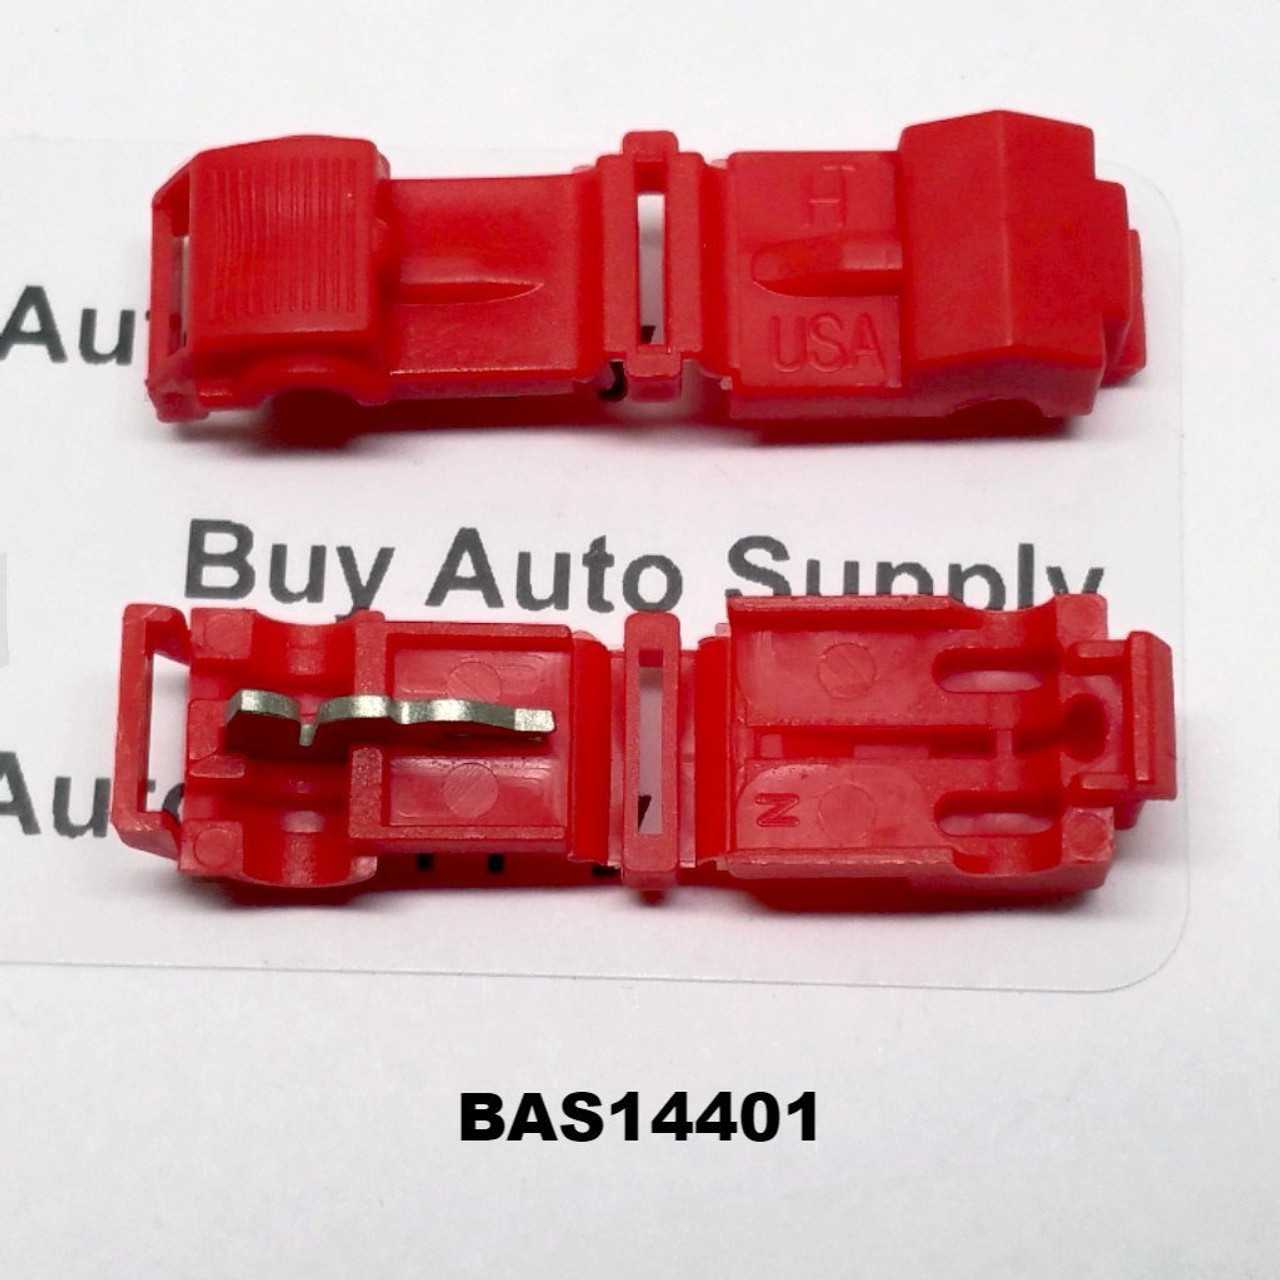 BAS14401 - Red T-Tap (22-18 AWG) -USA Made - from Buy Auto Supply